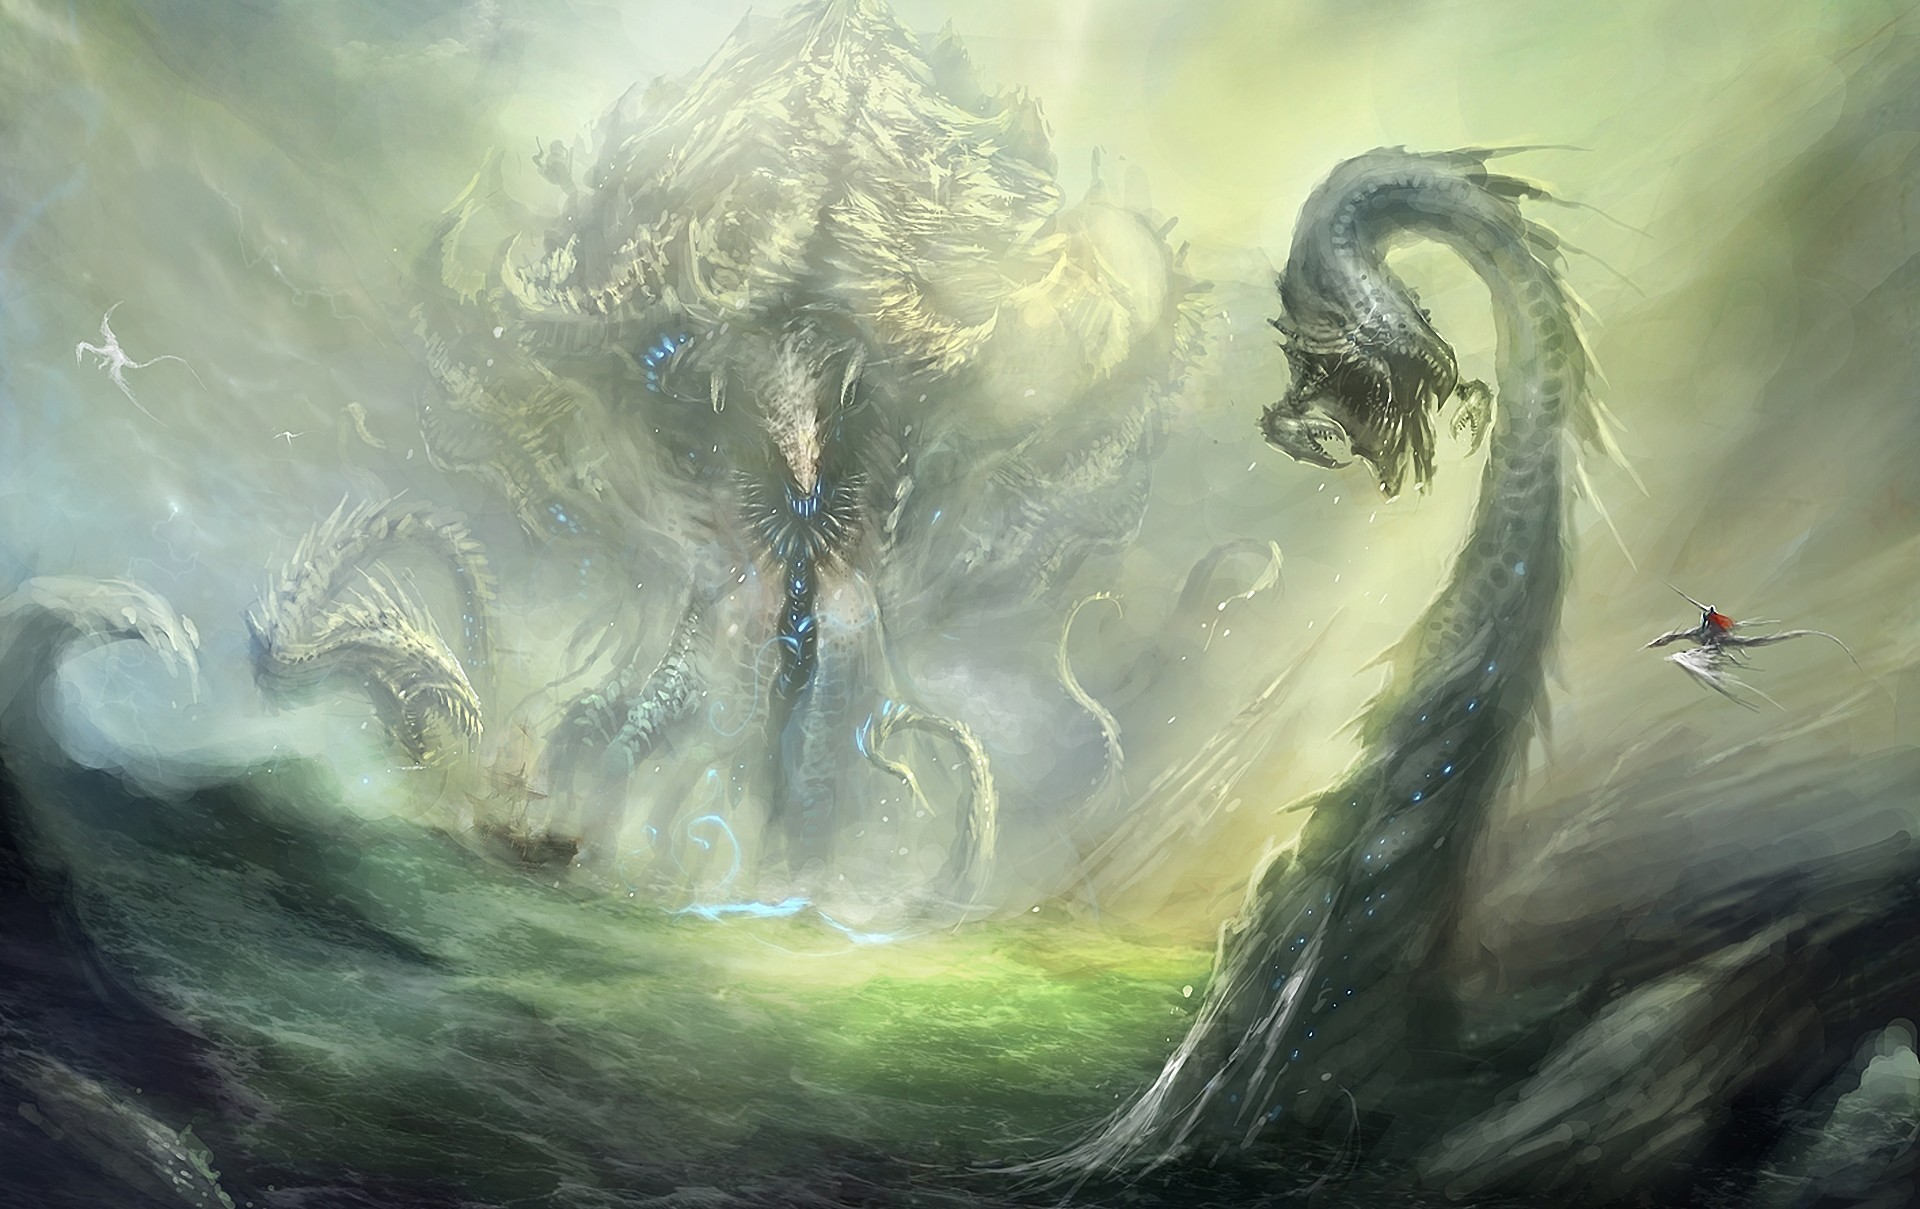 Dragon Definition: High Definition Wallpaper Of Art, Picture Of Monsters